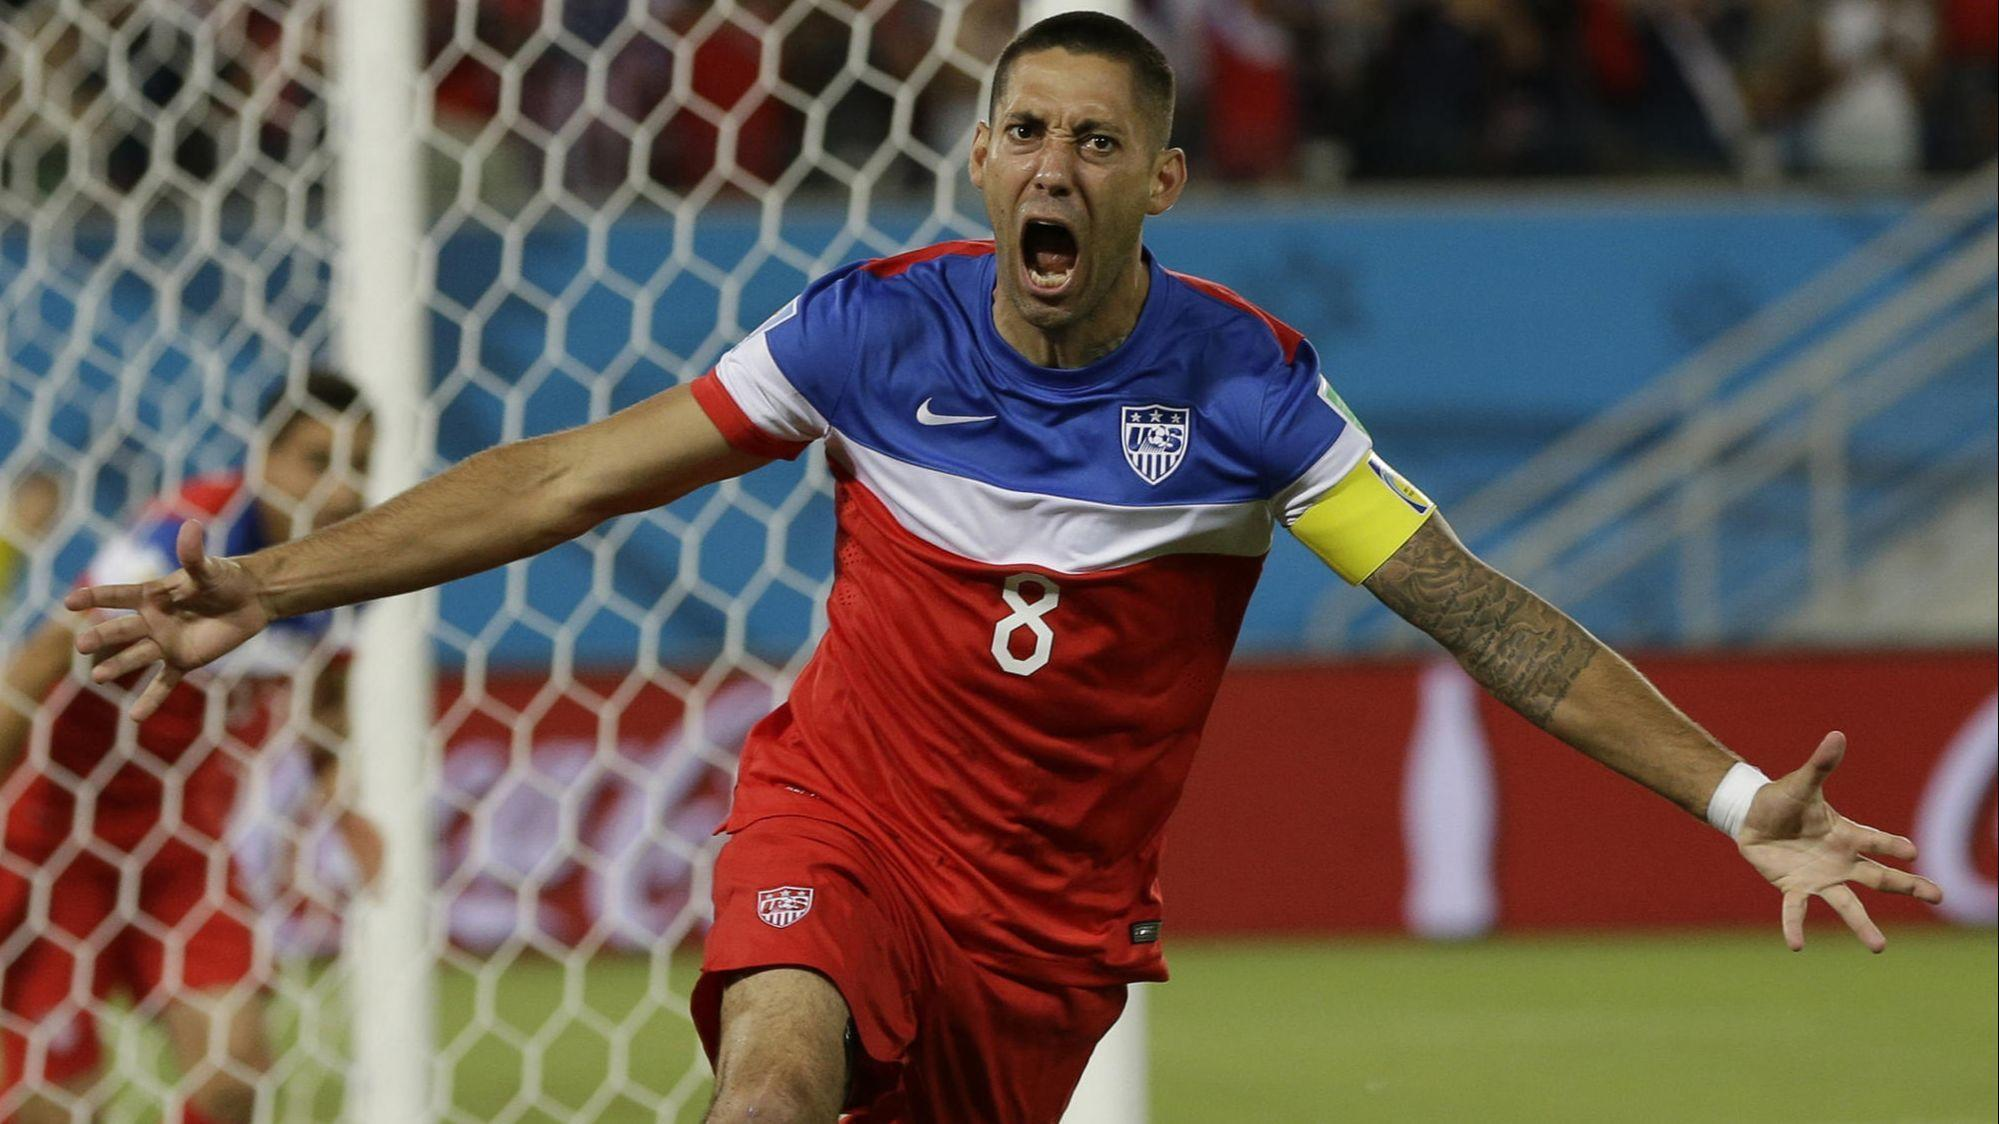 Clint Dempsey, mainstay of U.S. national team, retires